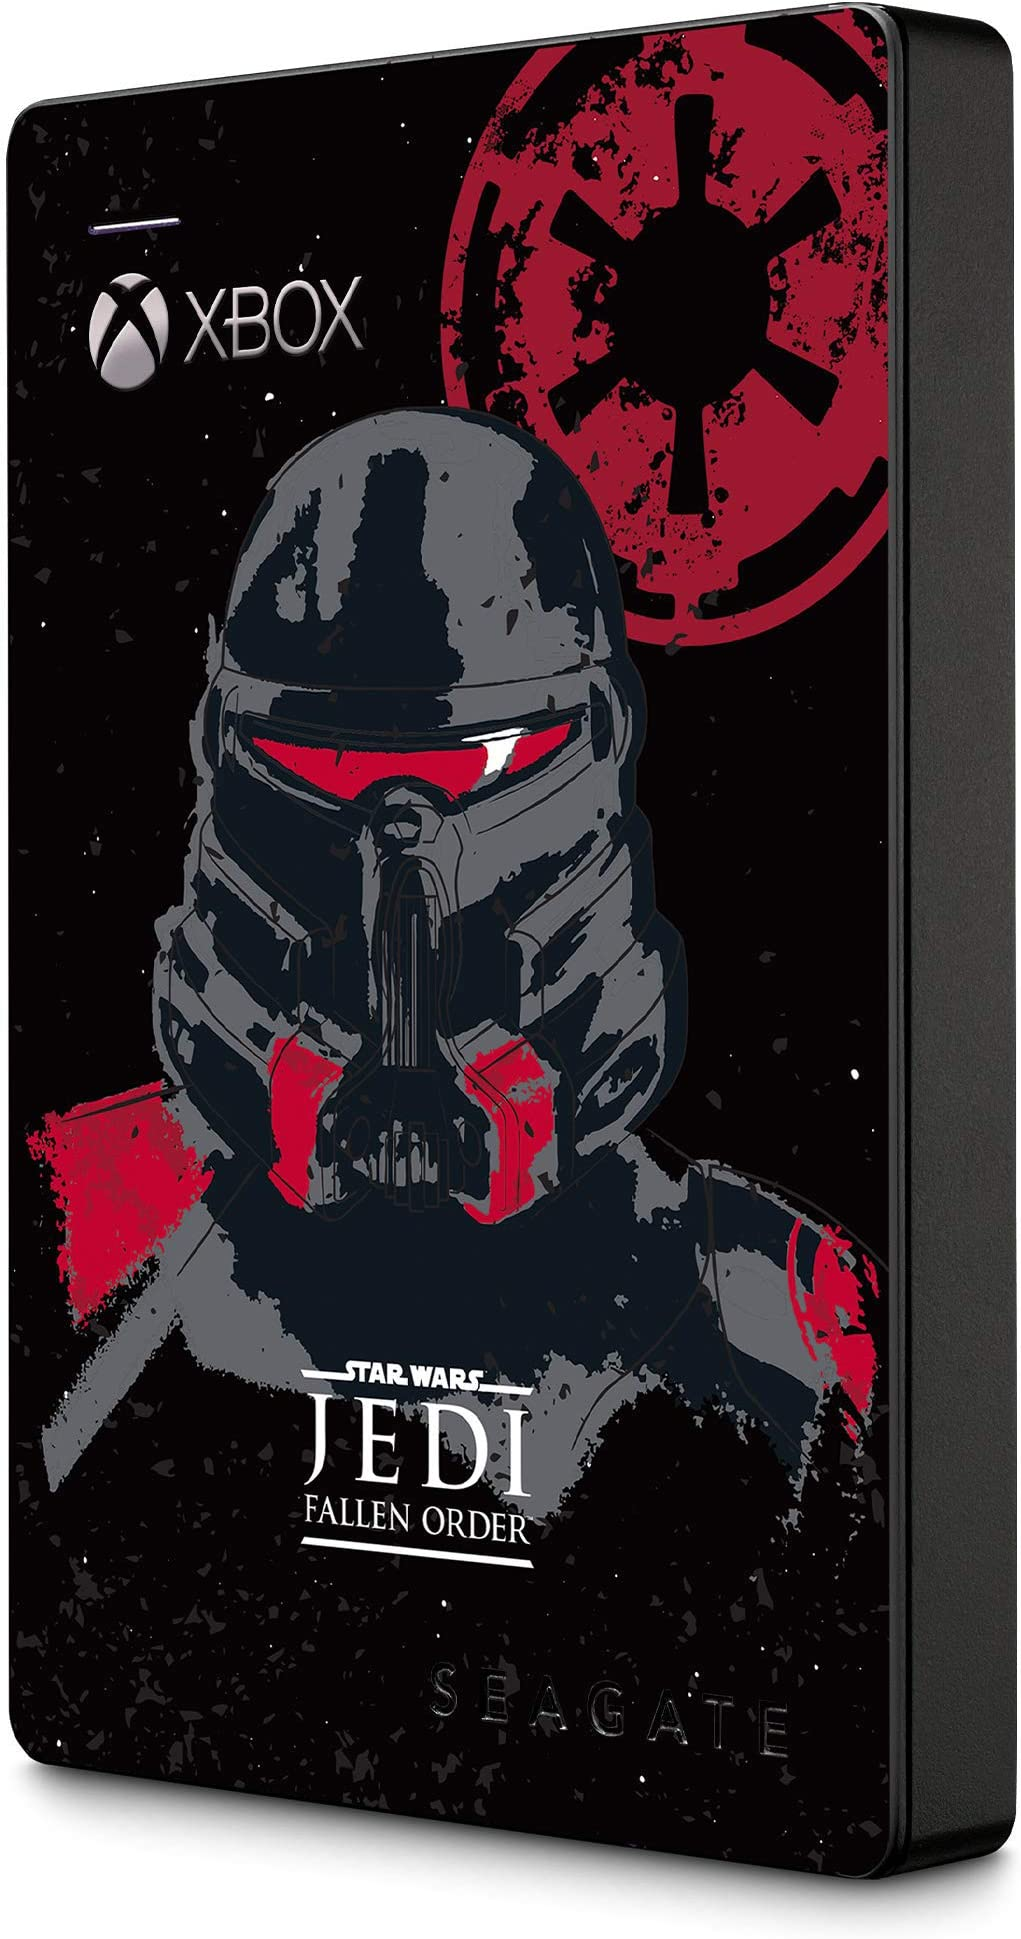 Seagate Game Drive For Xbox 2TB External Hard Drive Portable HDD – USB 3.0 Star Wars Jedi: Fallen Order Special Edition, Designed For Xbox One, 1 Year Rescue Service (Stea2000426)